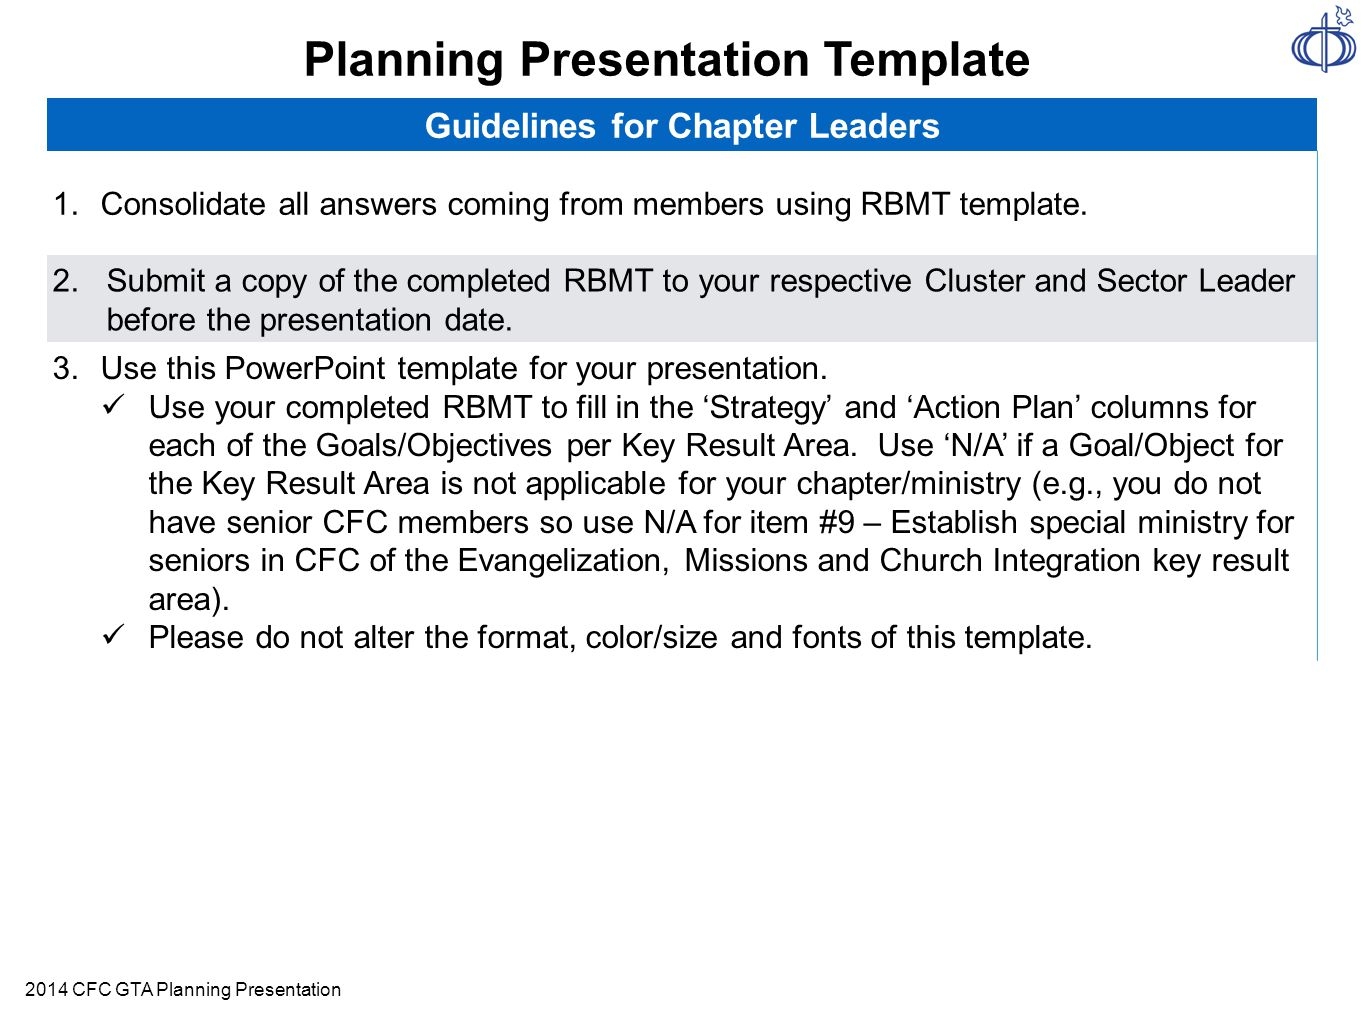 Planning Presentation Template Guidelines For Chapter Leaders